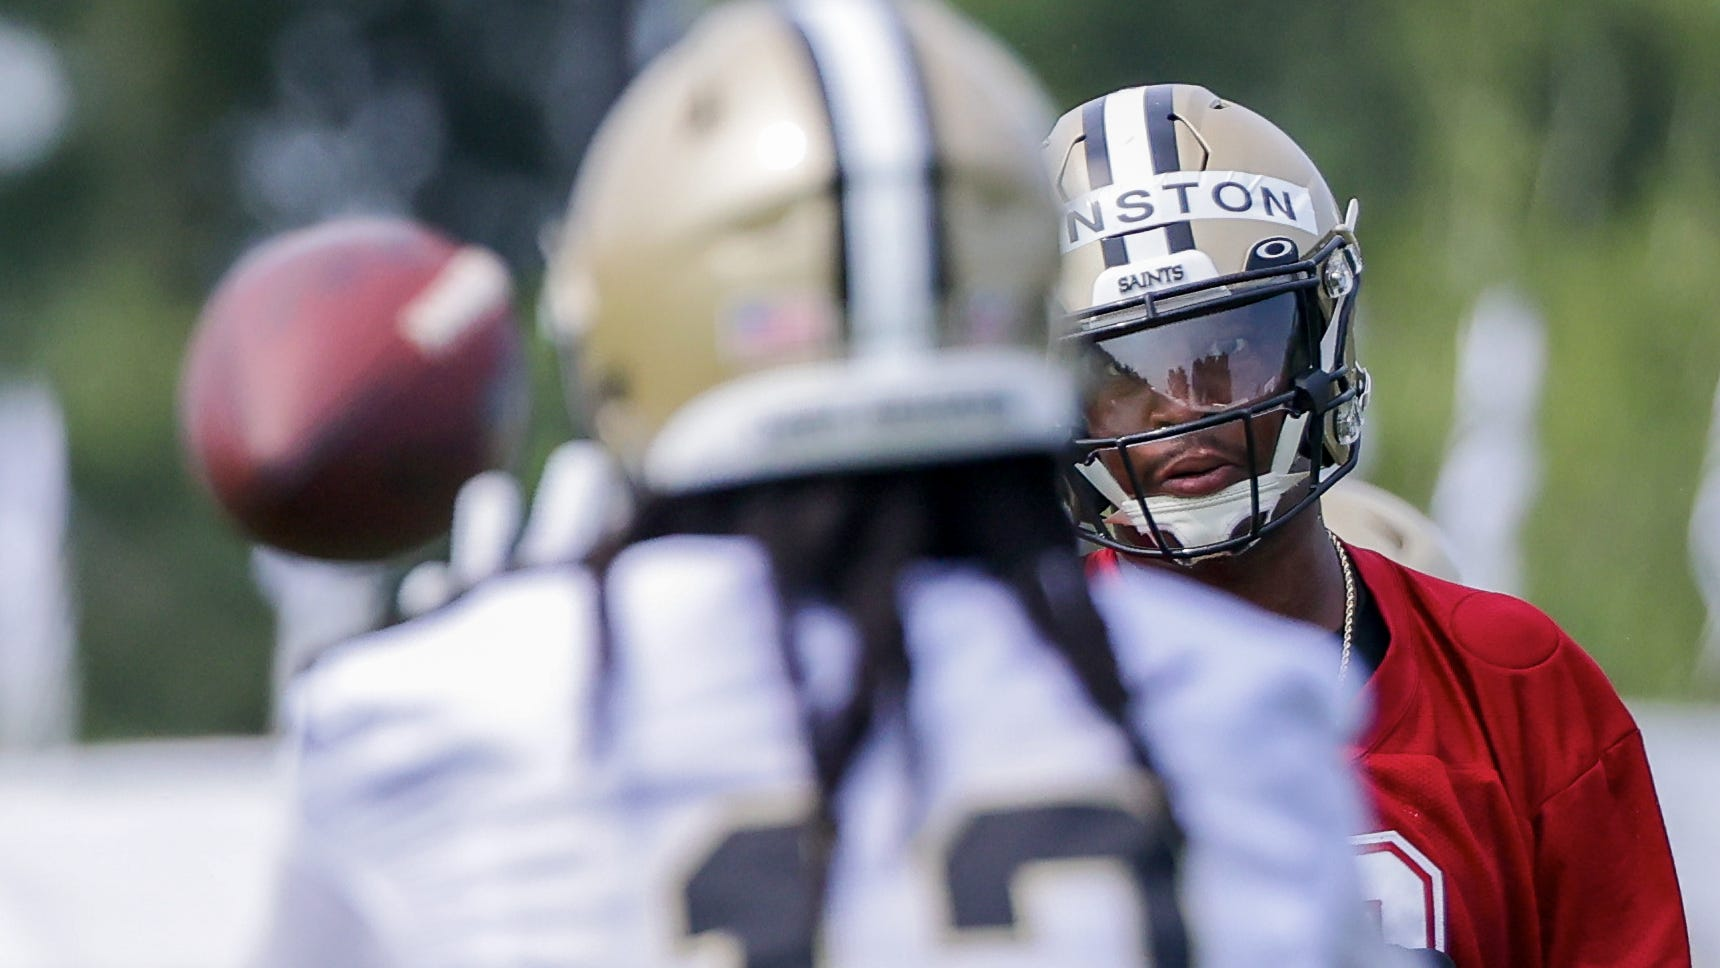 Watch: Reactions to Day 2 at Saints training camp with Mike Hoss & Bobby Hebert